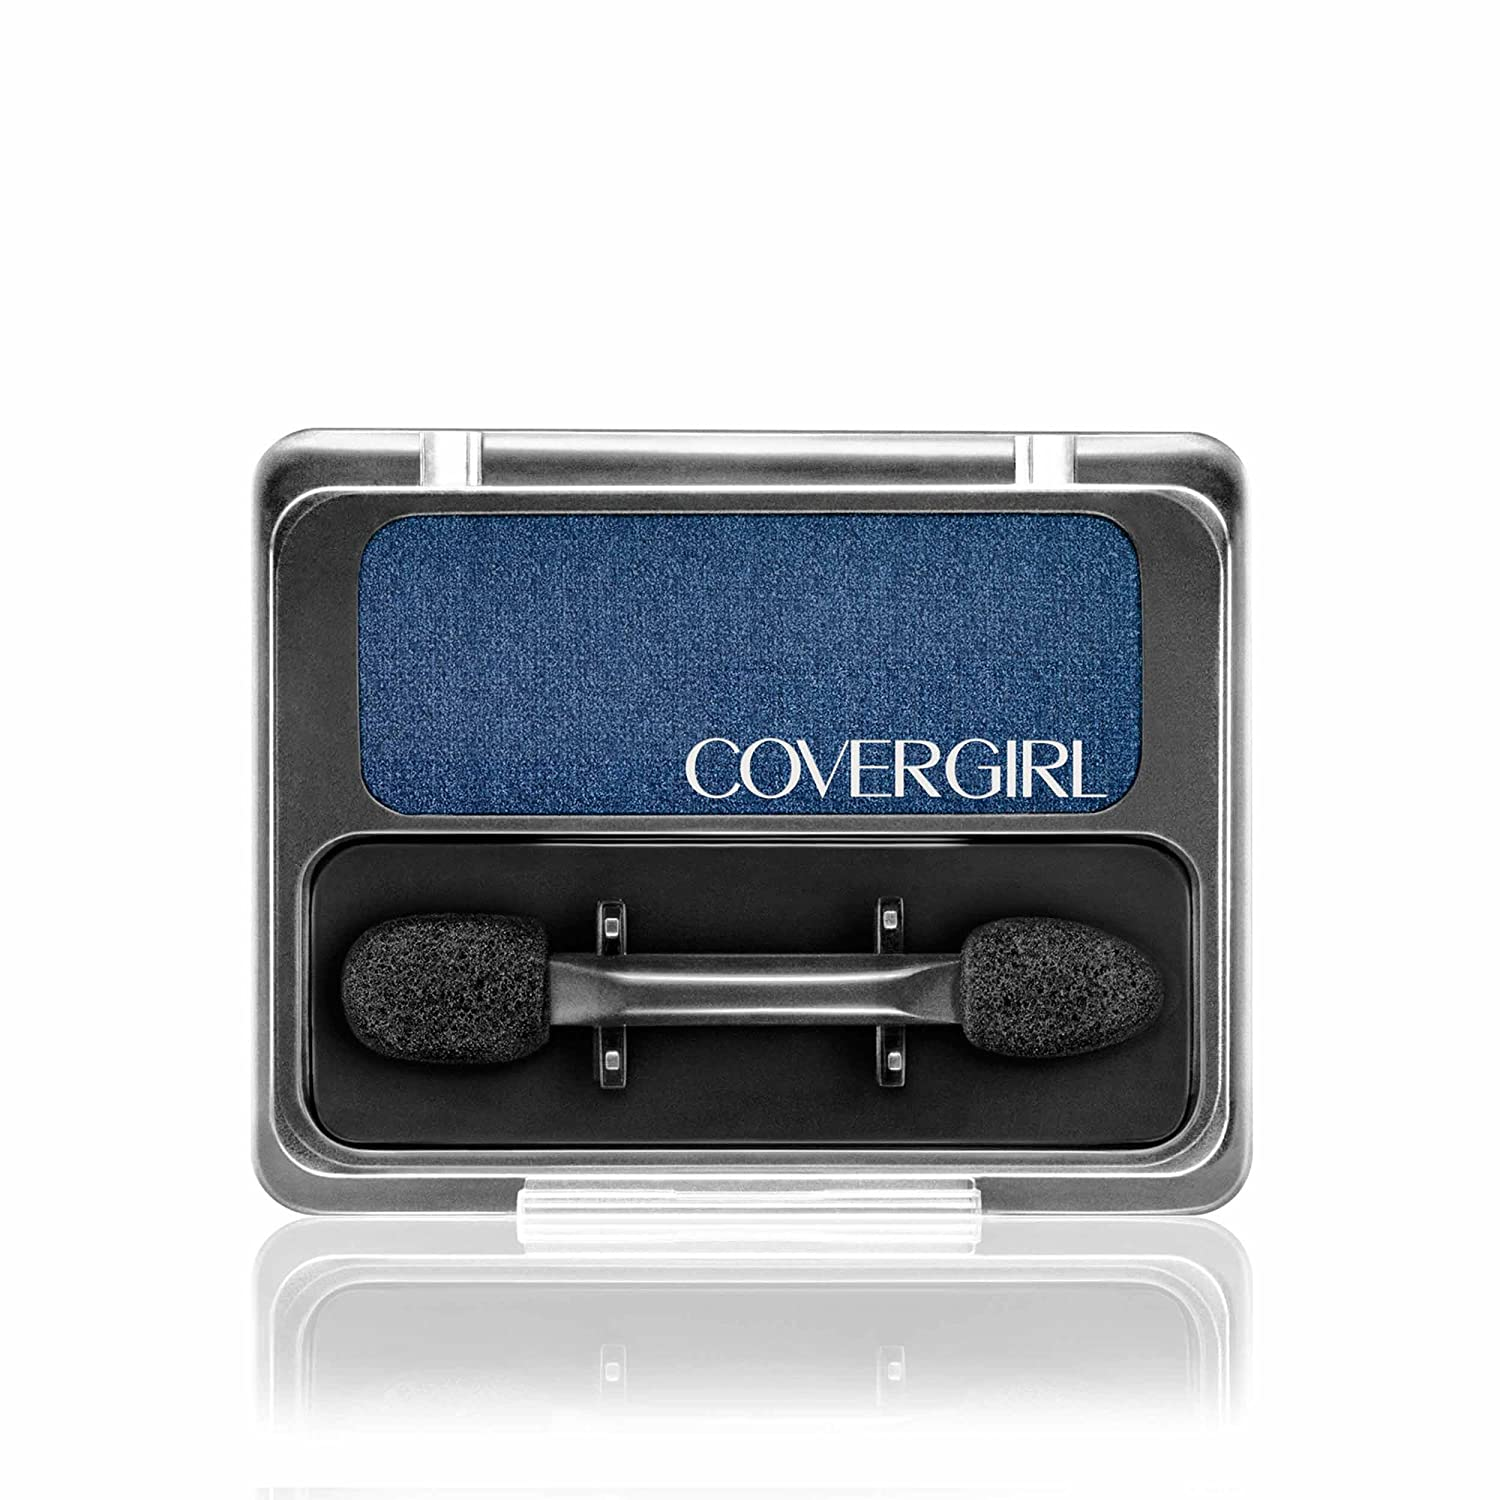 COVERGIRL - Eye Enhancers 1-Kit Eyeshadow - Packaging May Vary Coty 2270004792